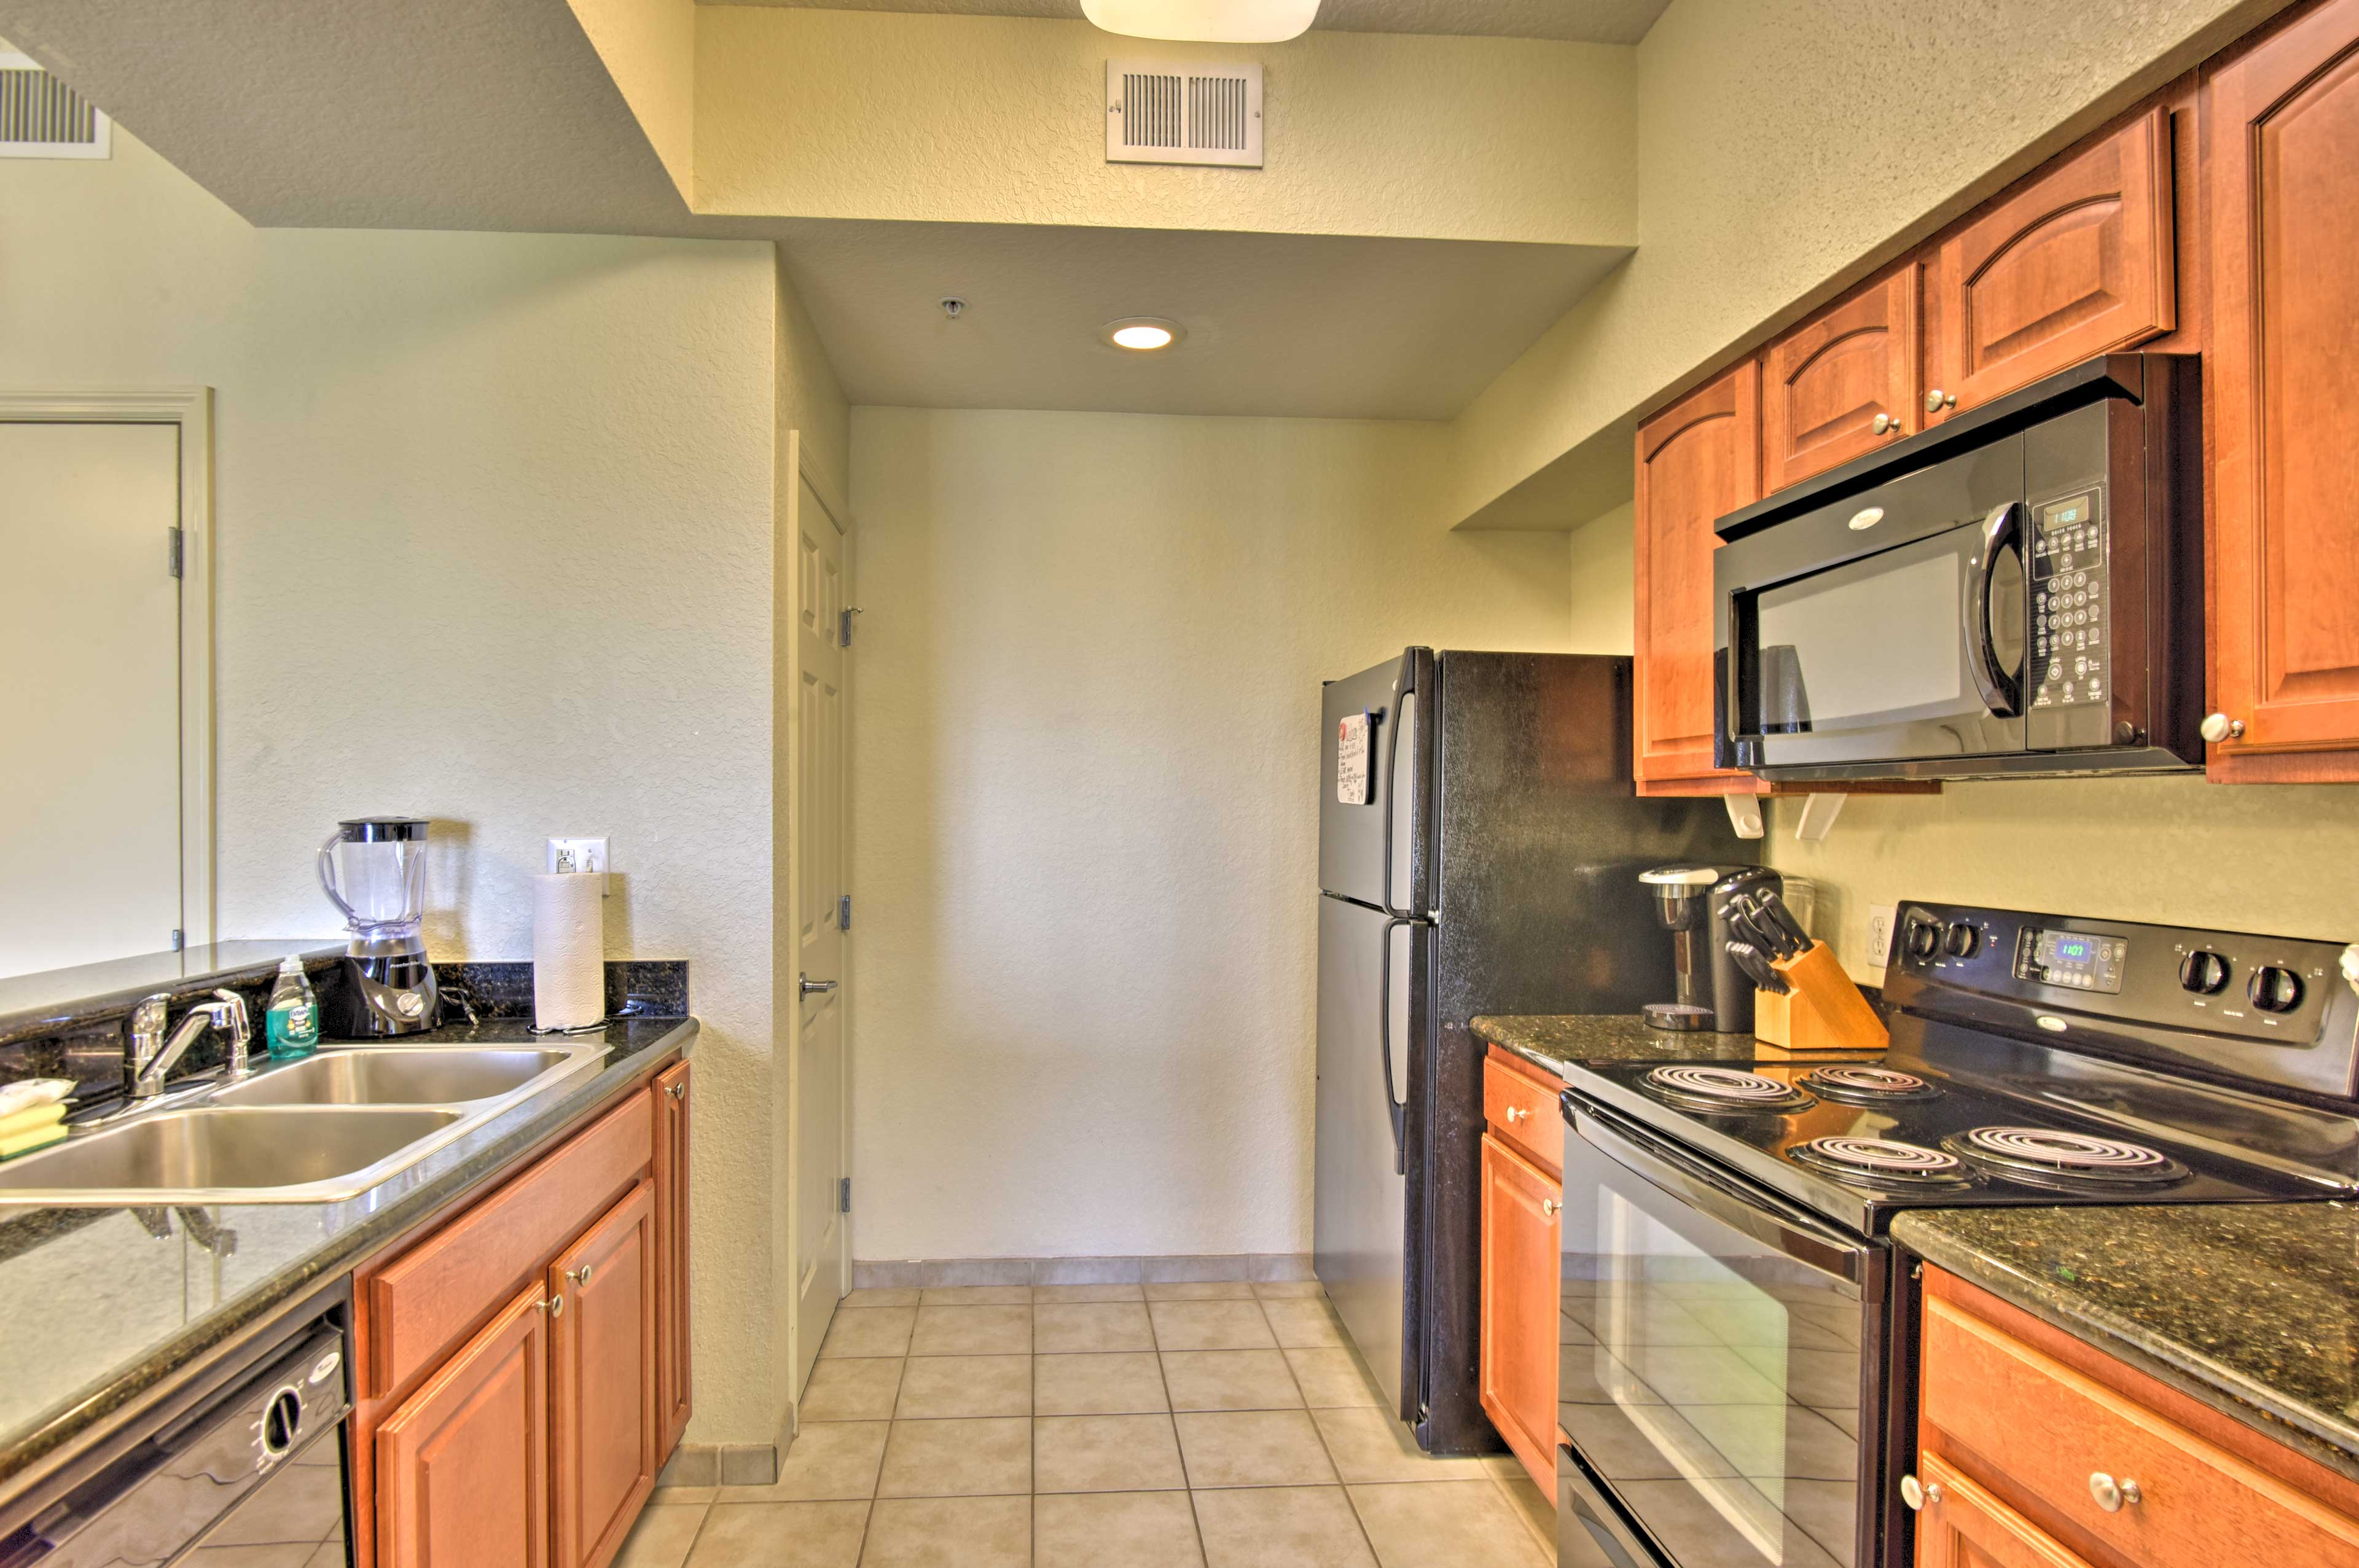 Put your culinary skills to the test in this fully equipped kitchen.